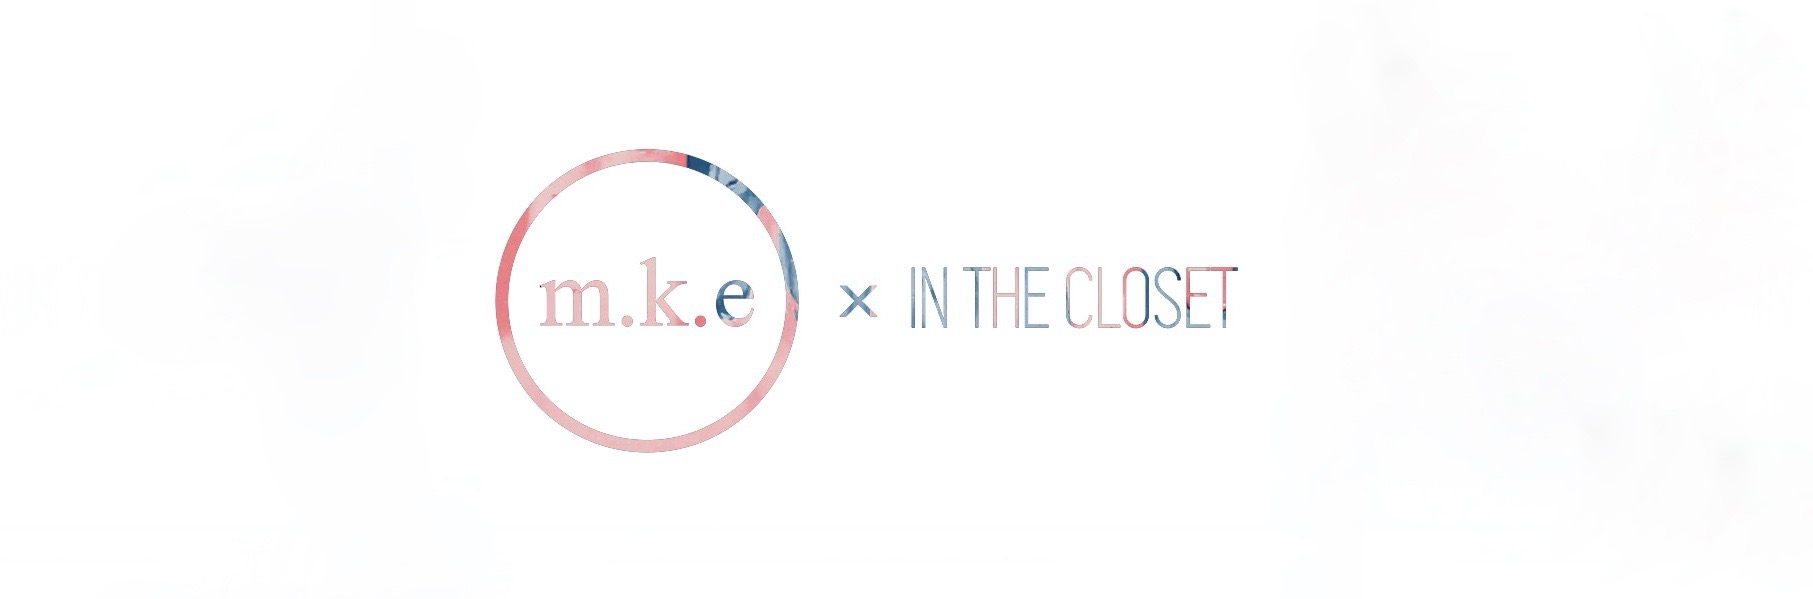 M.K.E In The Closet #intheclosetgr